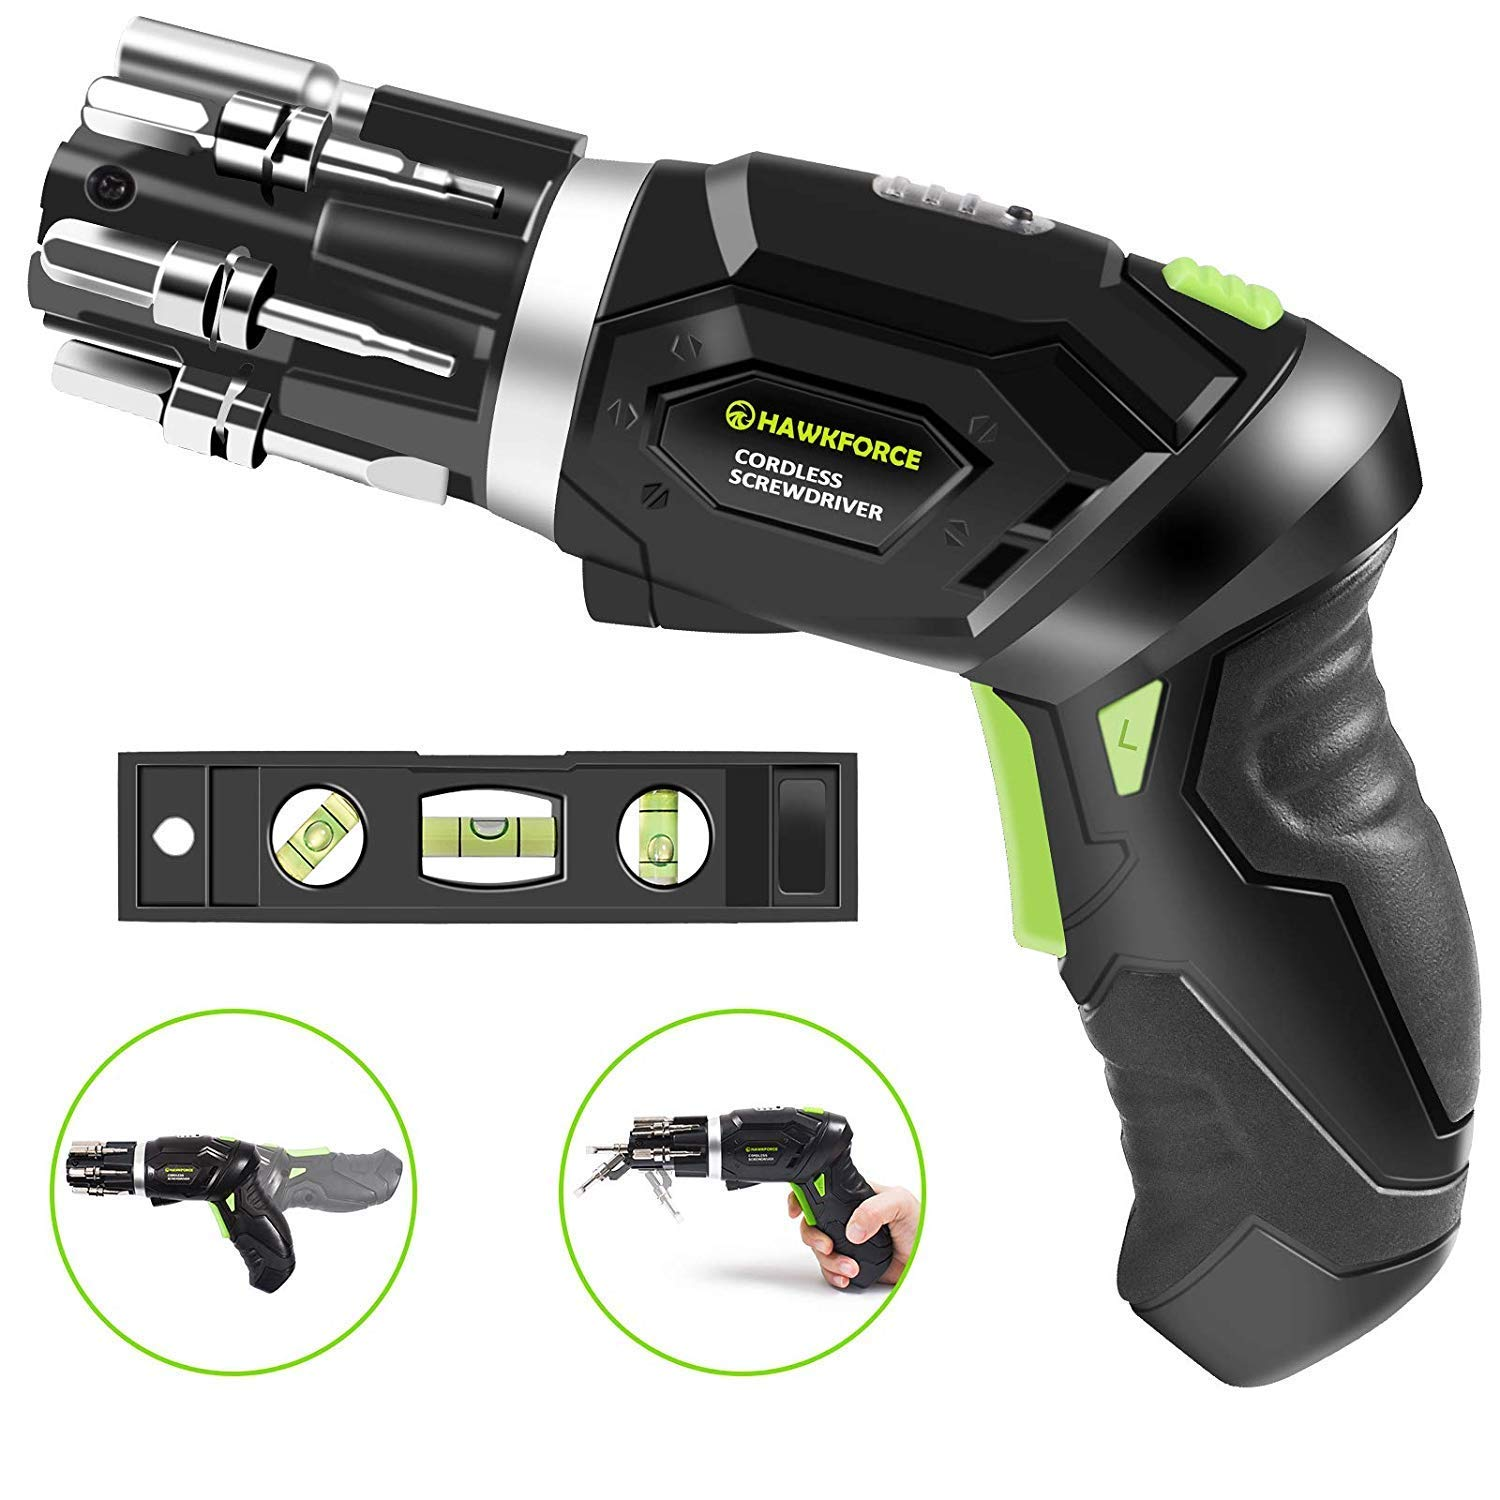 Hawkforce 3.6 Volt Rechargeable Cordless Electric Screwdriver Set 2 Adjustable Position Handle, 2 Phillips, 2 Flathead, 2 Hex Bits and Front LED Light with Bubble Level Fit for Newbies, Experienced